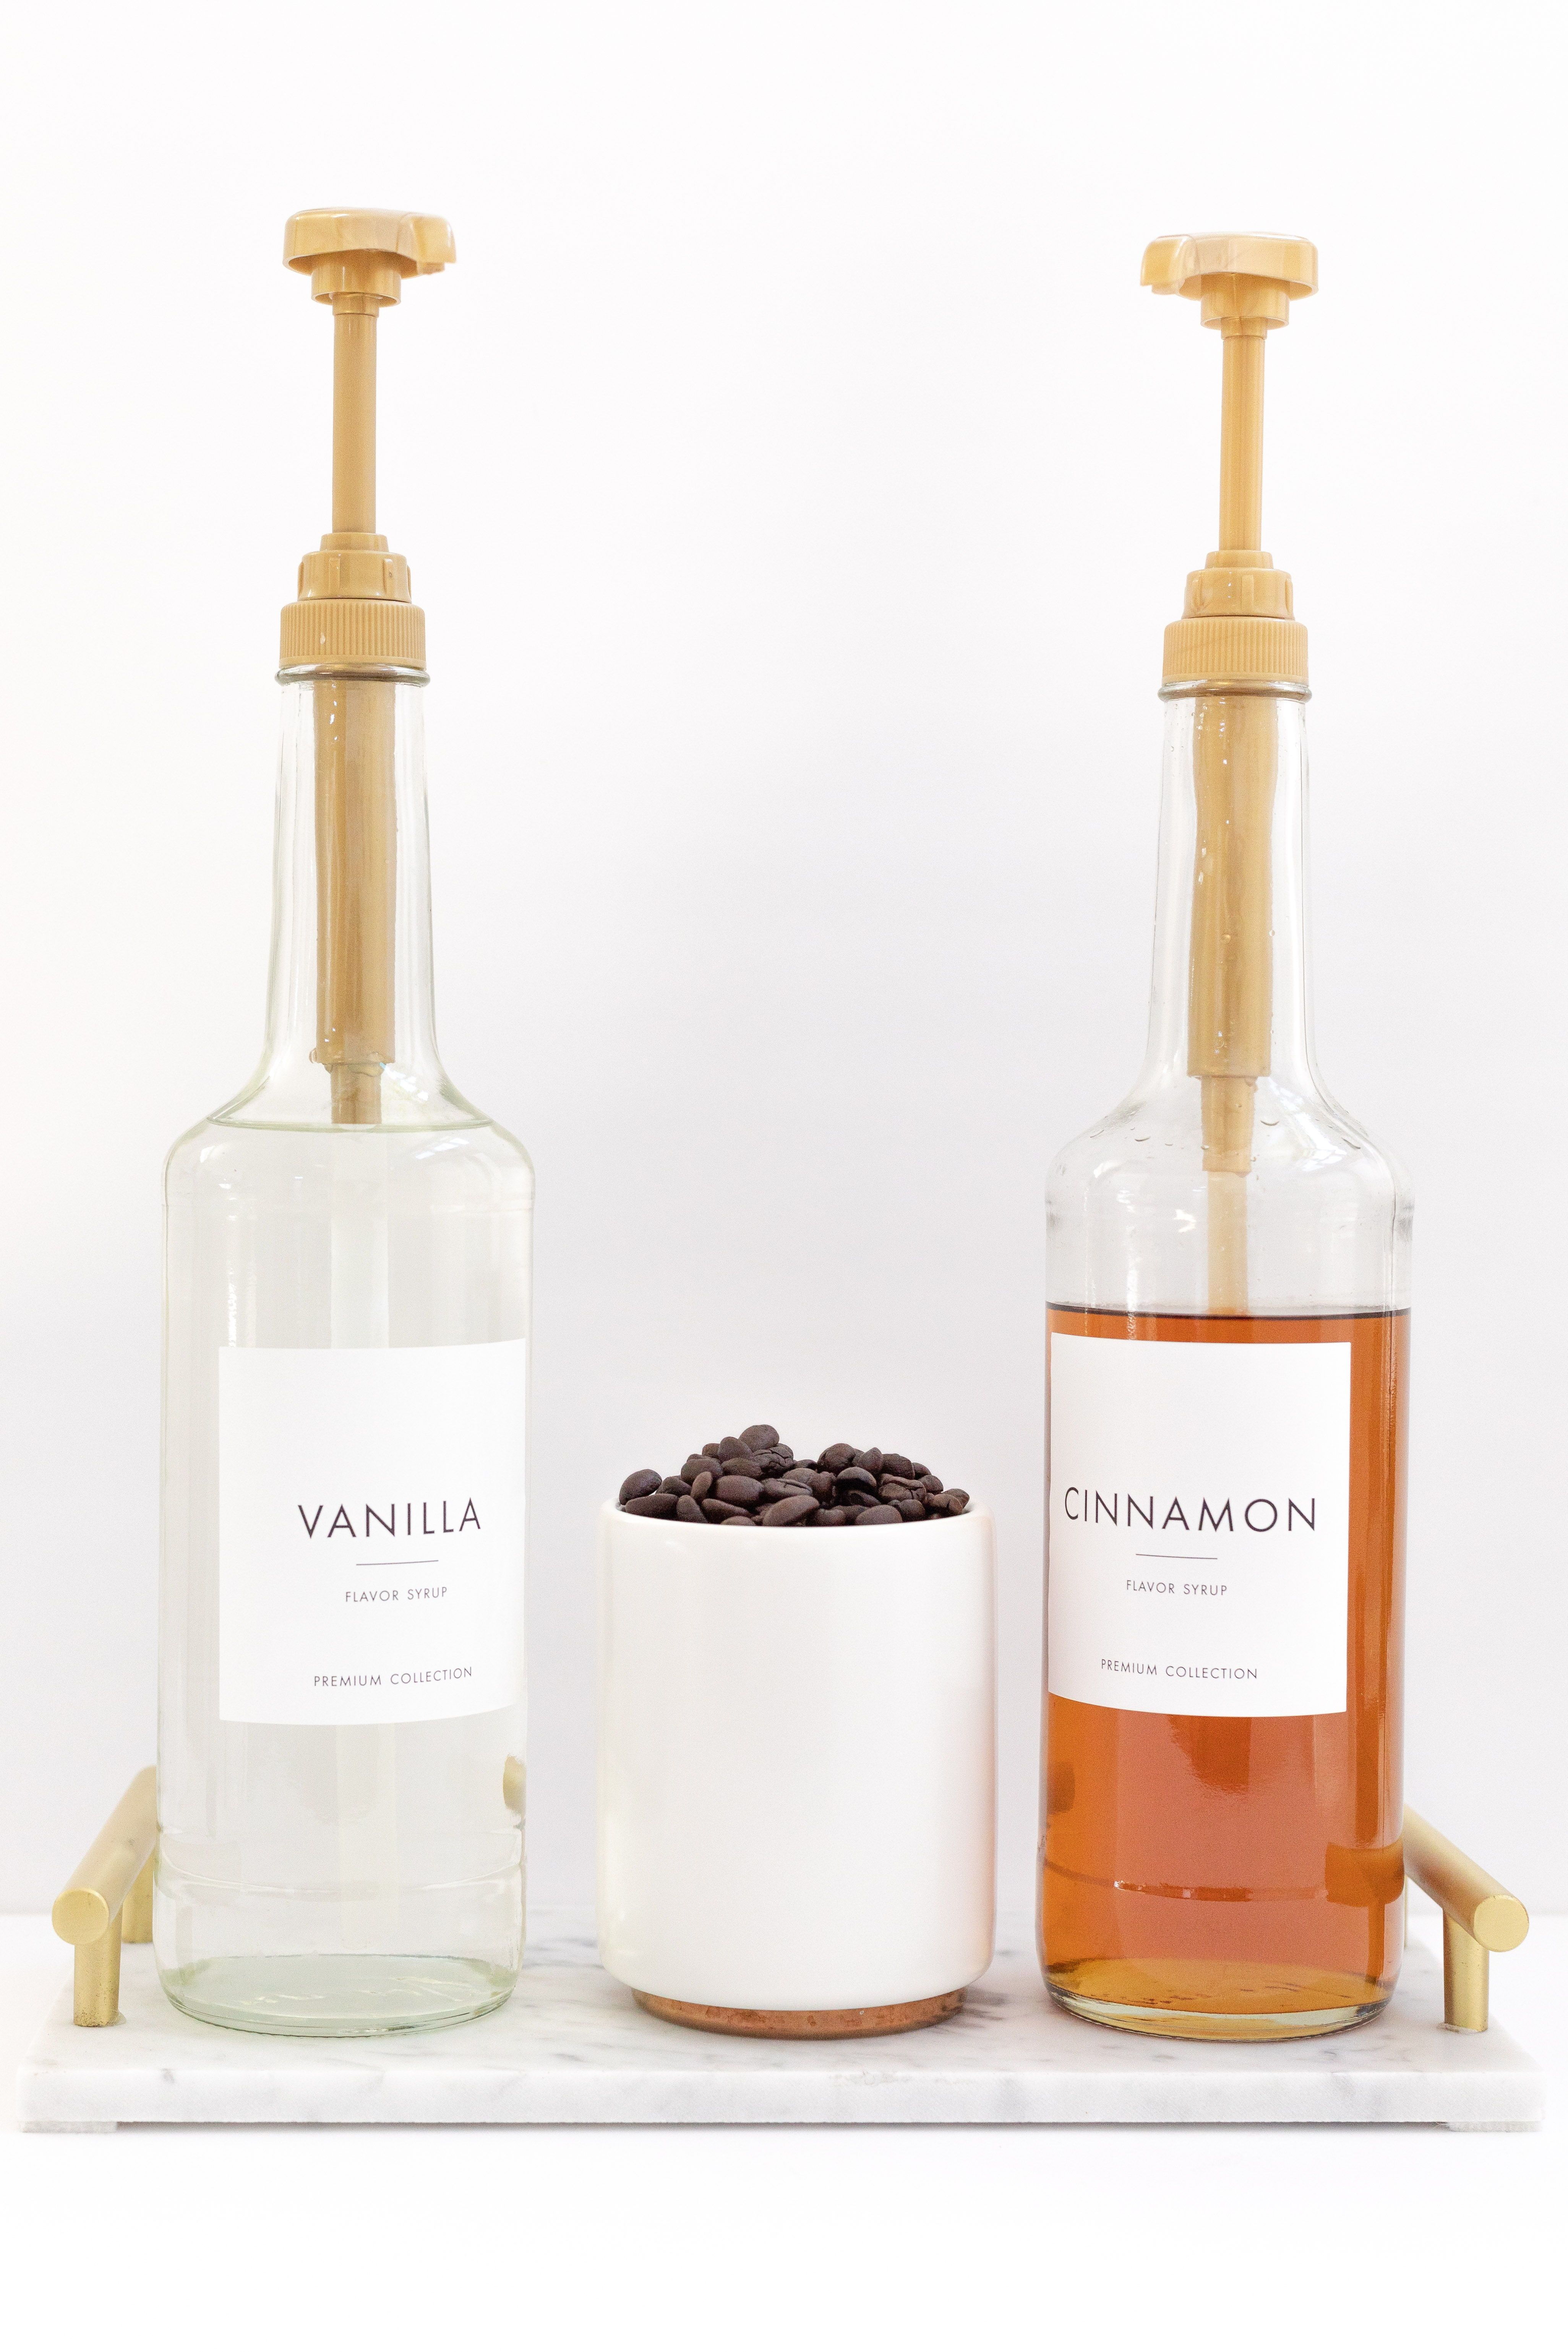 Modern coffee flavor syrup labels - organized look